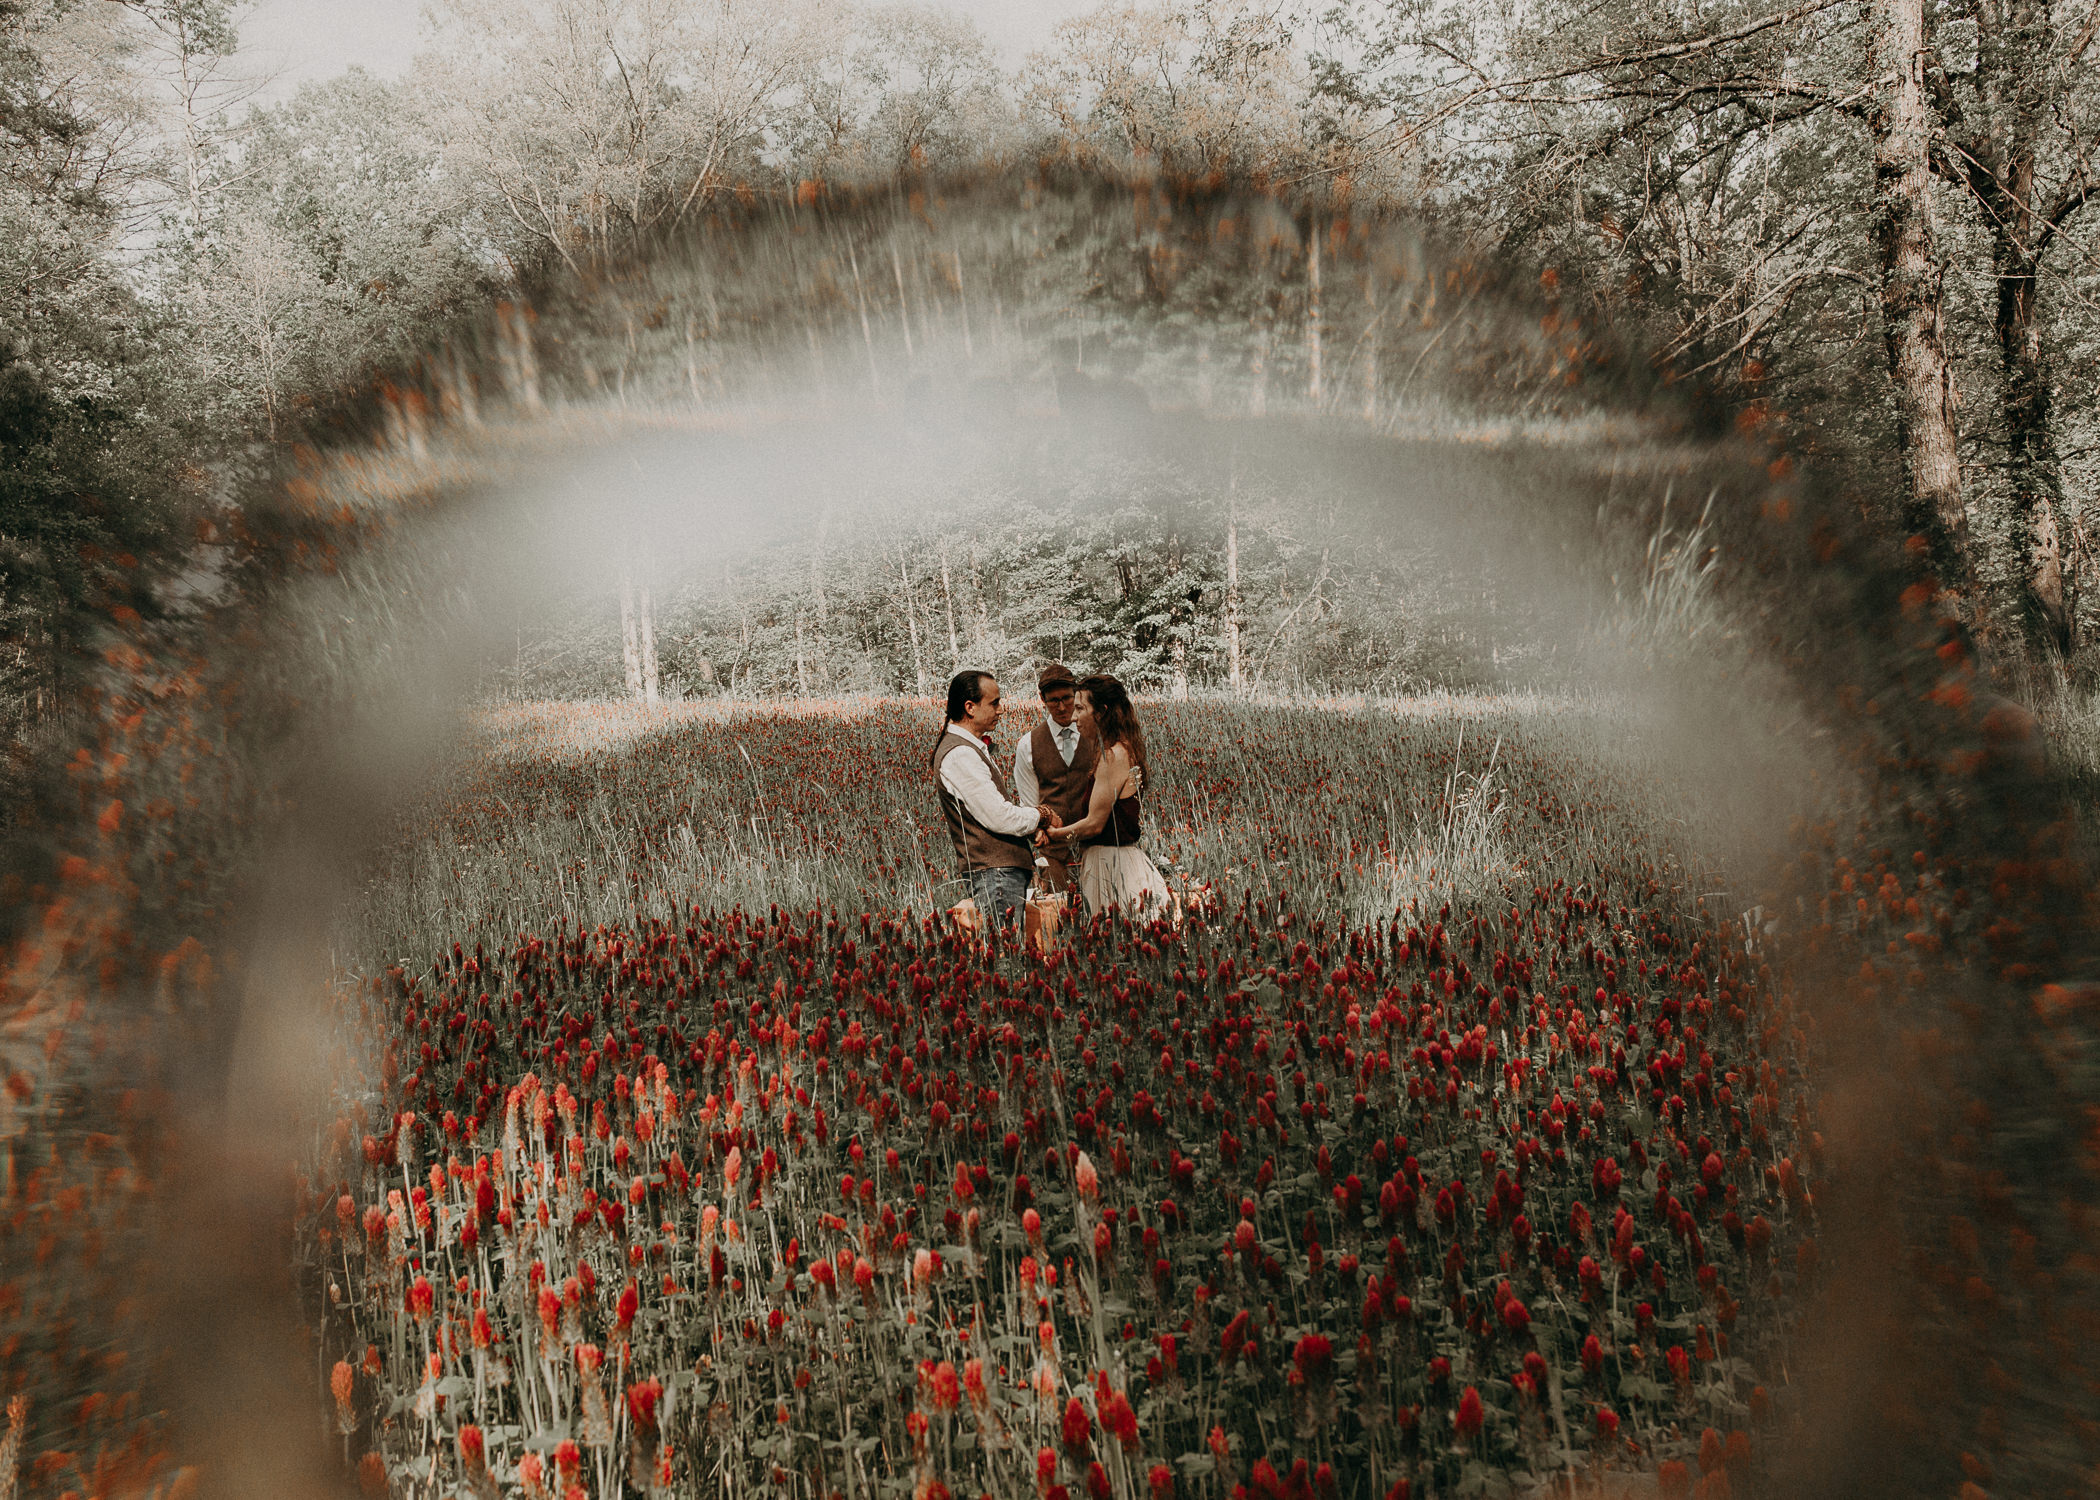 64- Forest wedding boho enchanched fairytale wedding atlanta - ga , intimate, elopement, nature, greens, good vibes. Aline Marin Photography .jpg